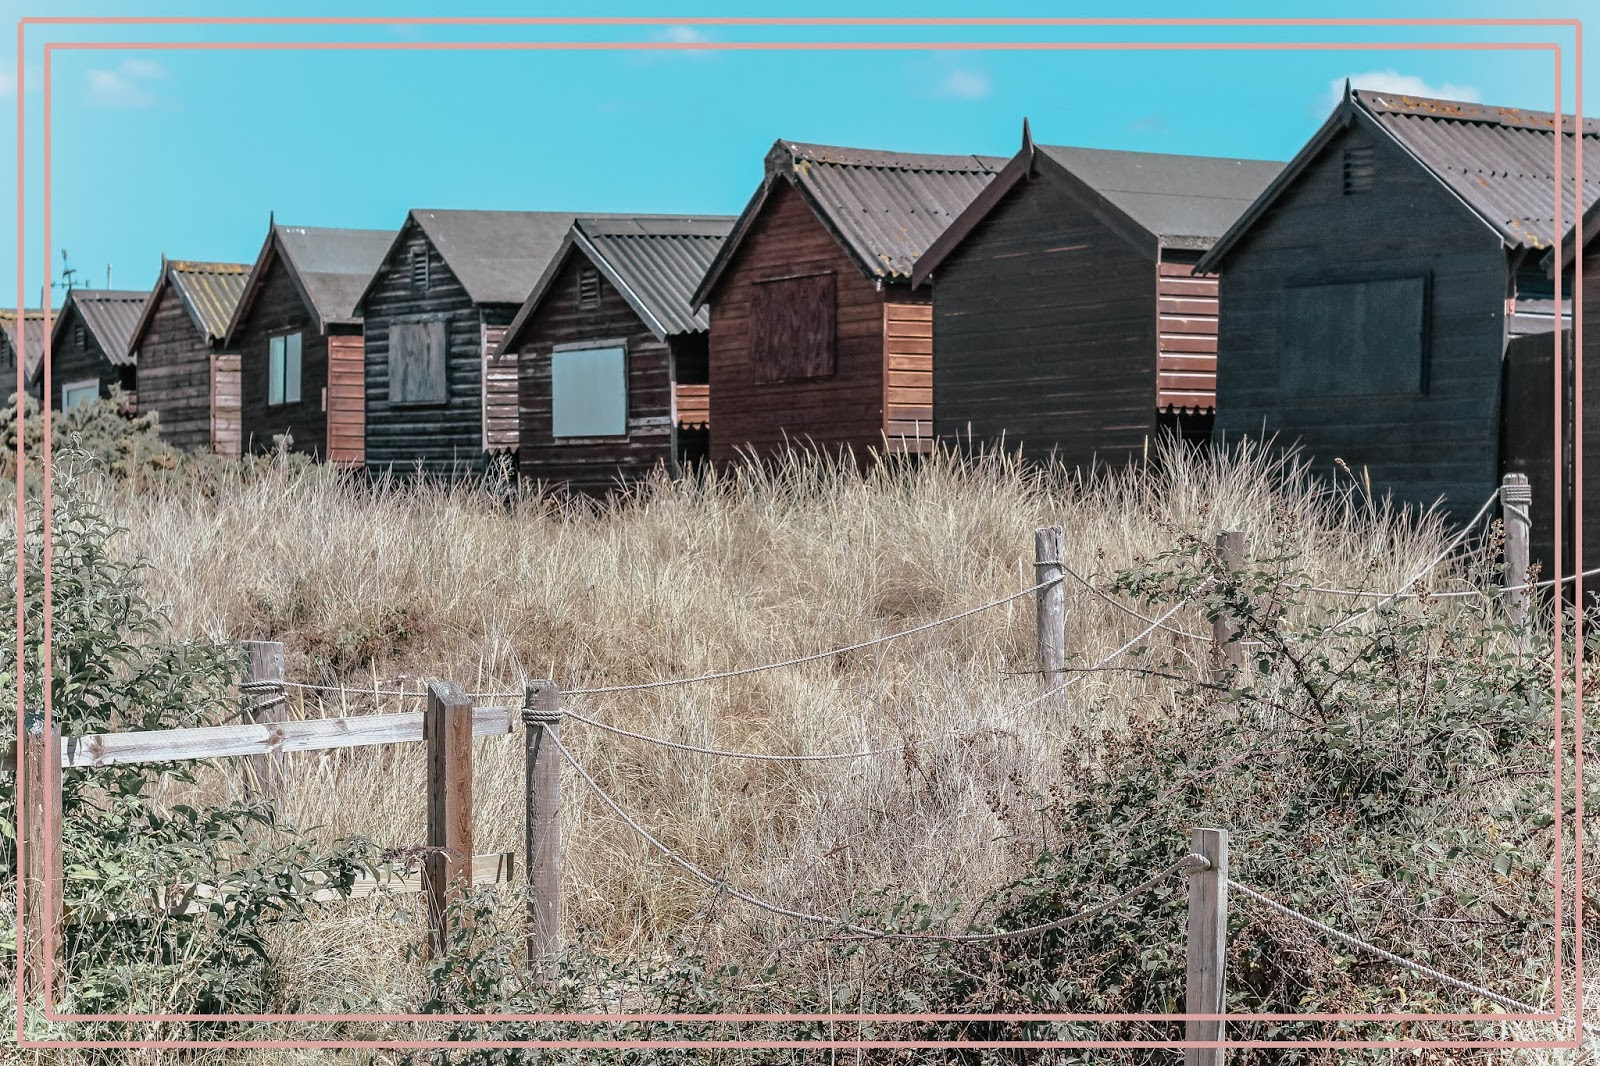 UK British Beach Huts in South England